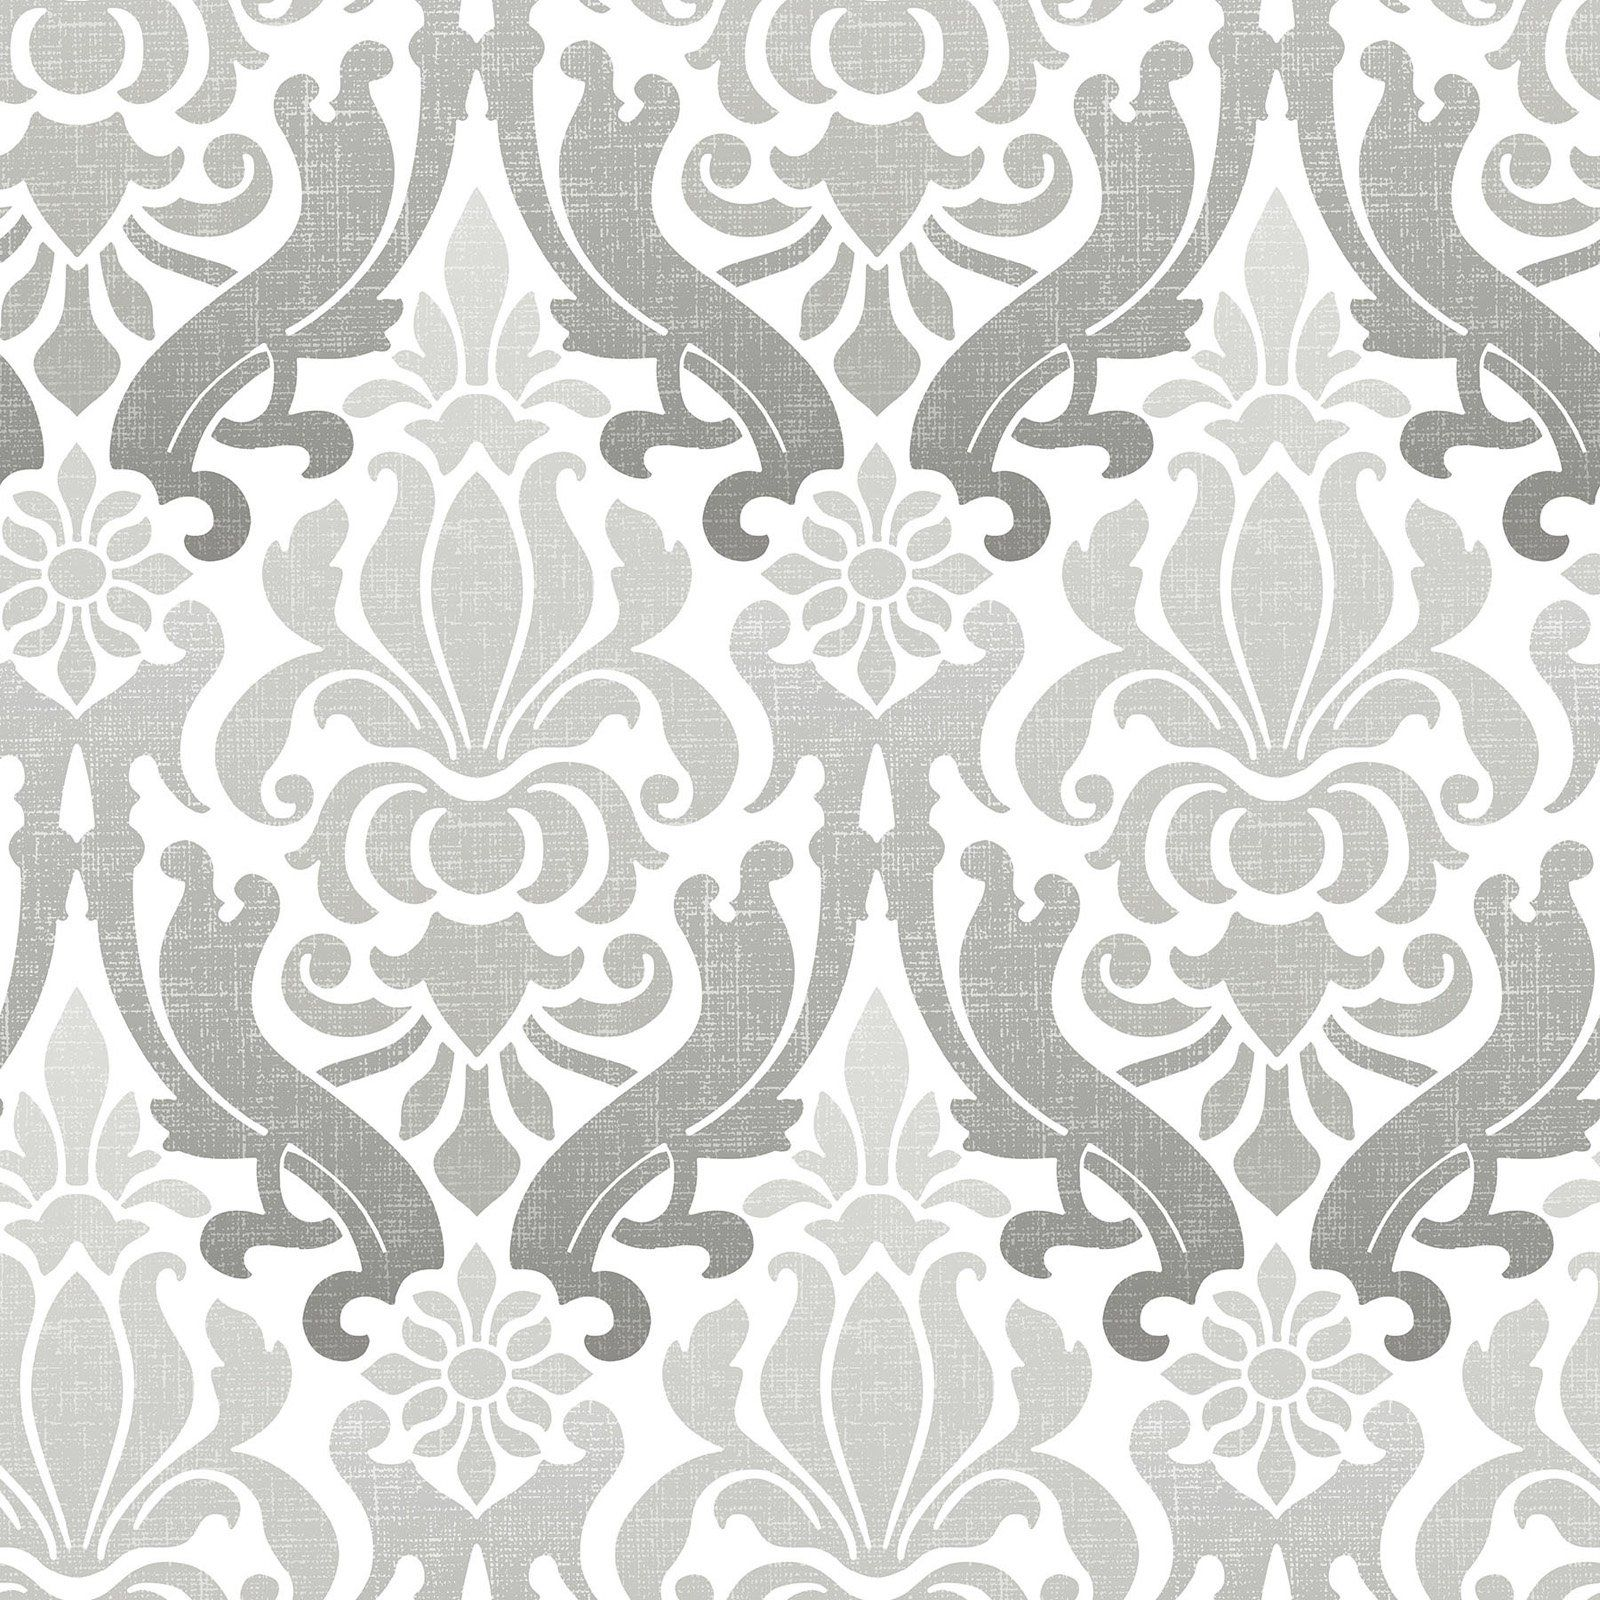 Brewster Nouveau Damask Peel And Stick Wallpaper In 2020 Nuwallpaper Silver Wallpaper Peel And Stick Wallpaper